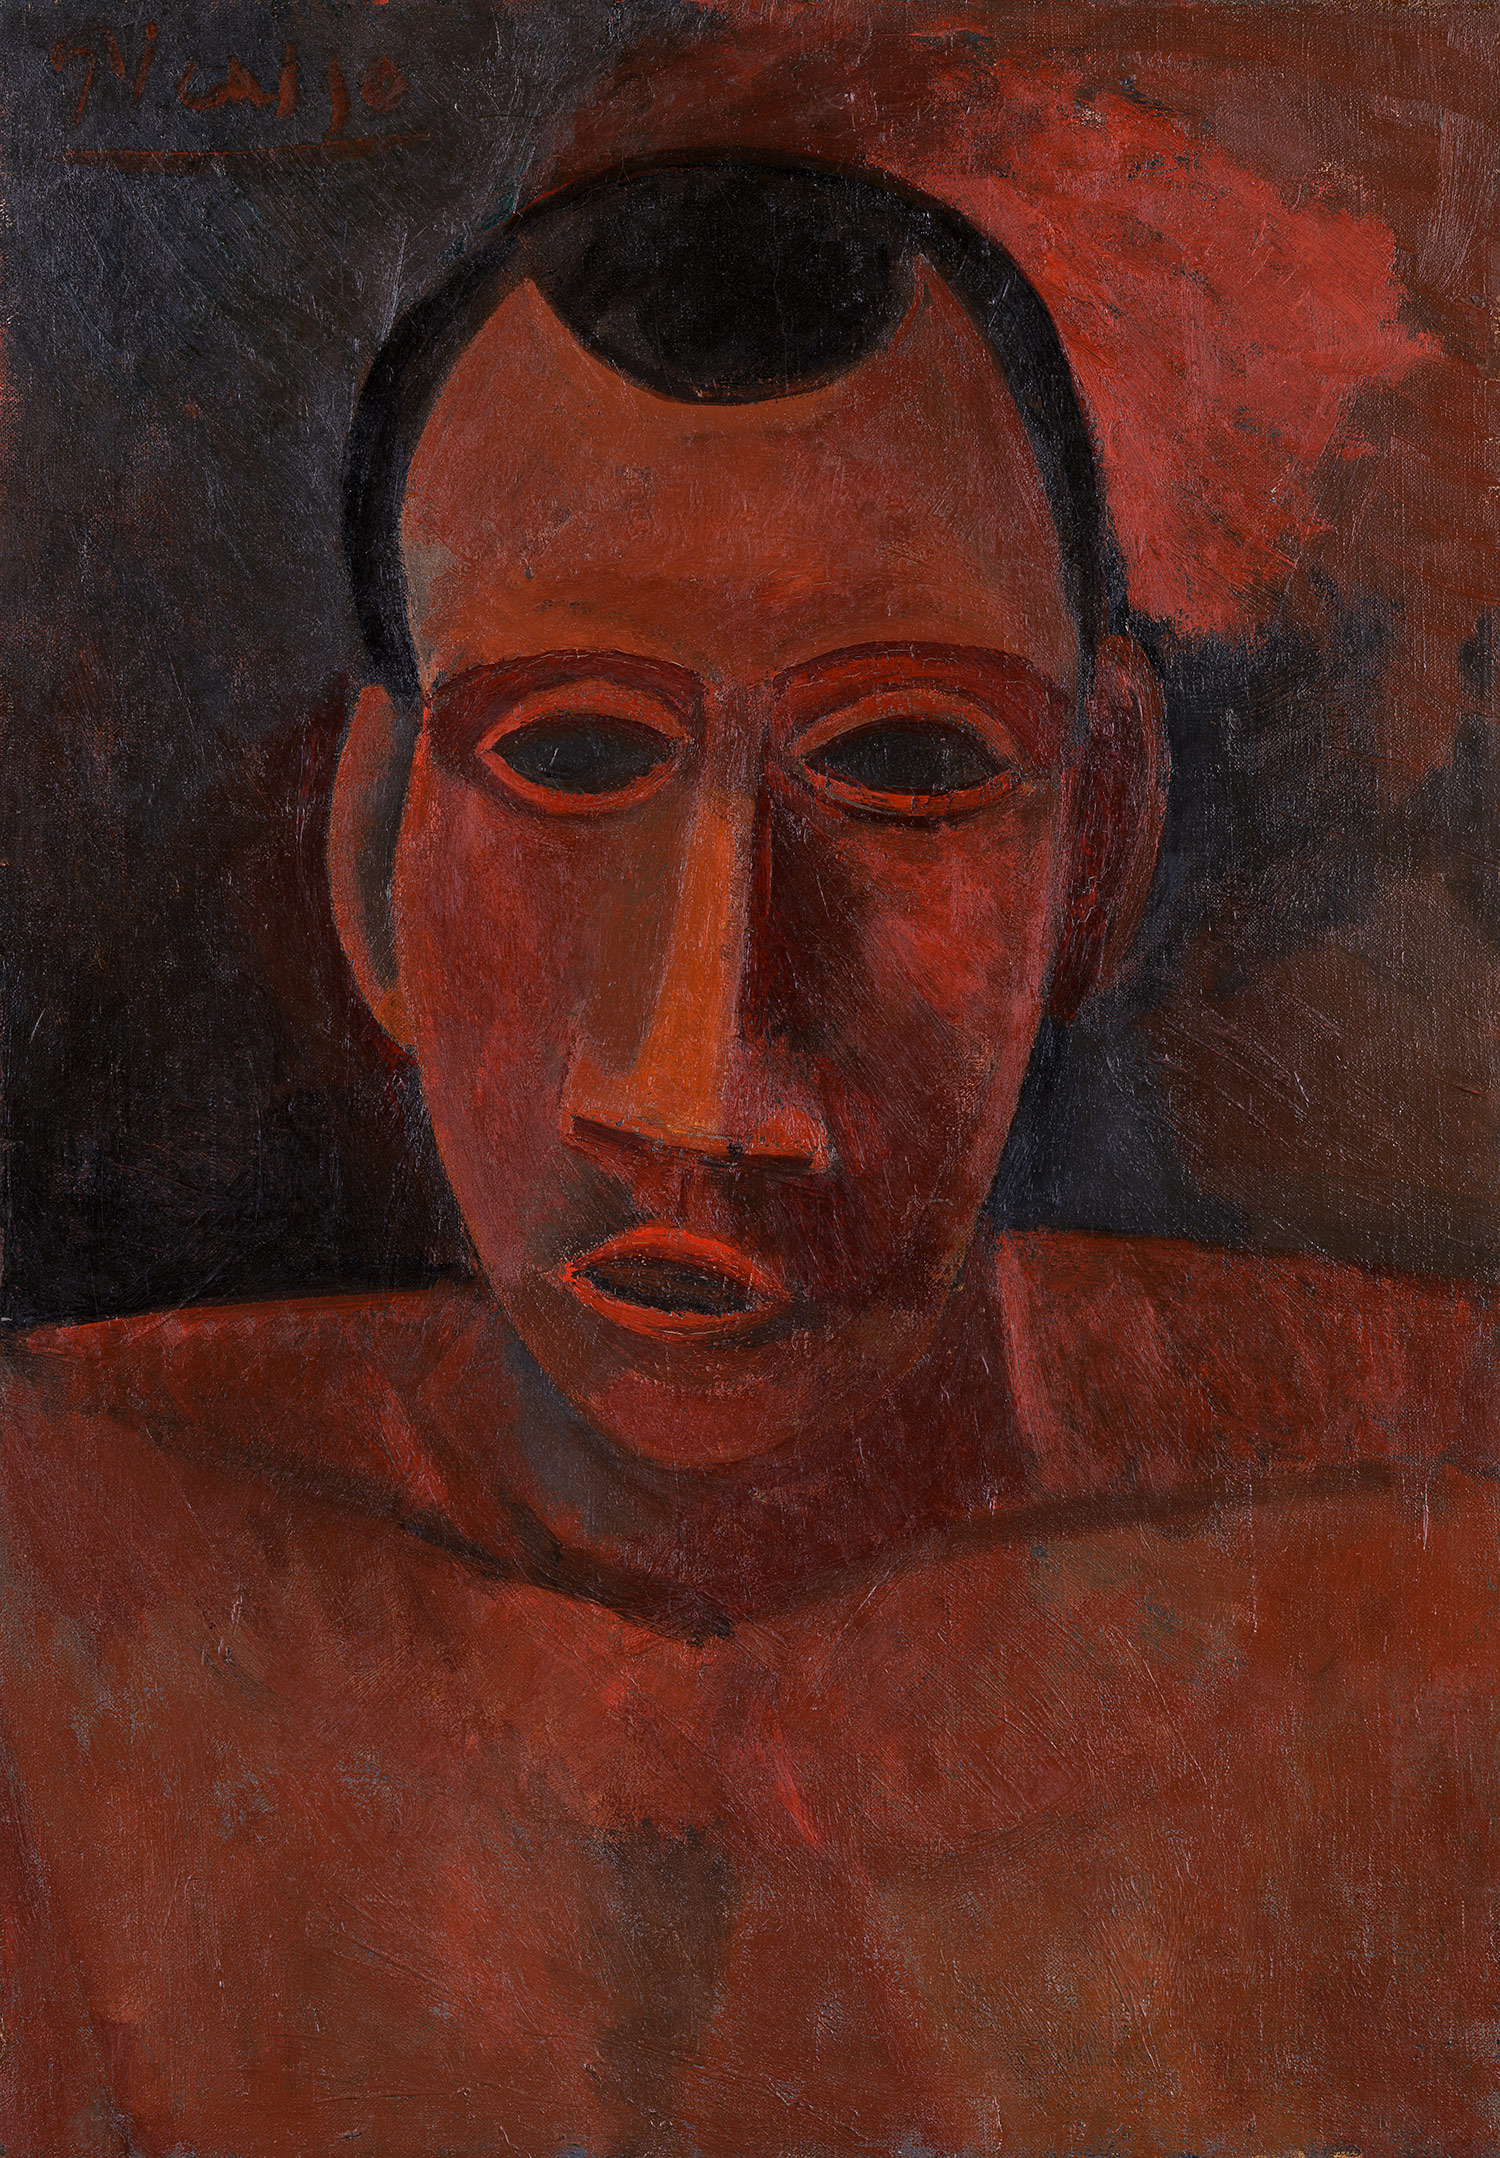 vision empirical reality guided work commented stein portrait picasso replied